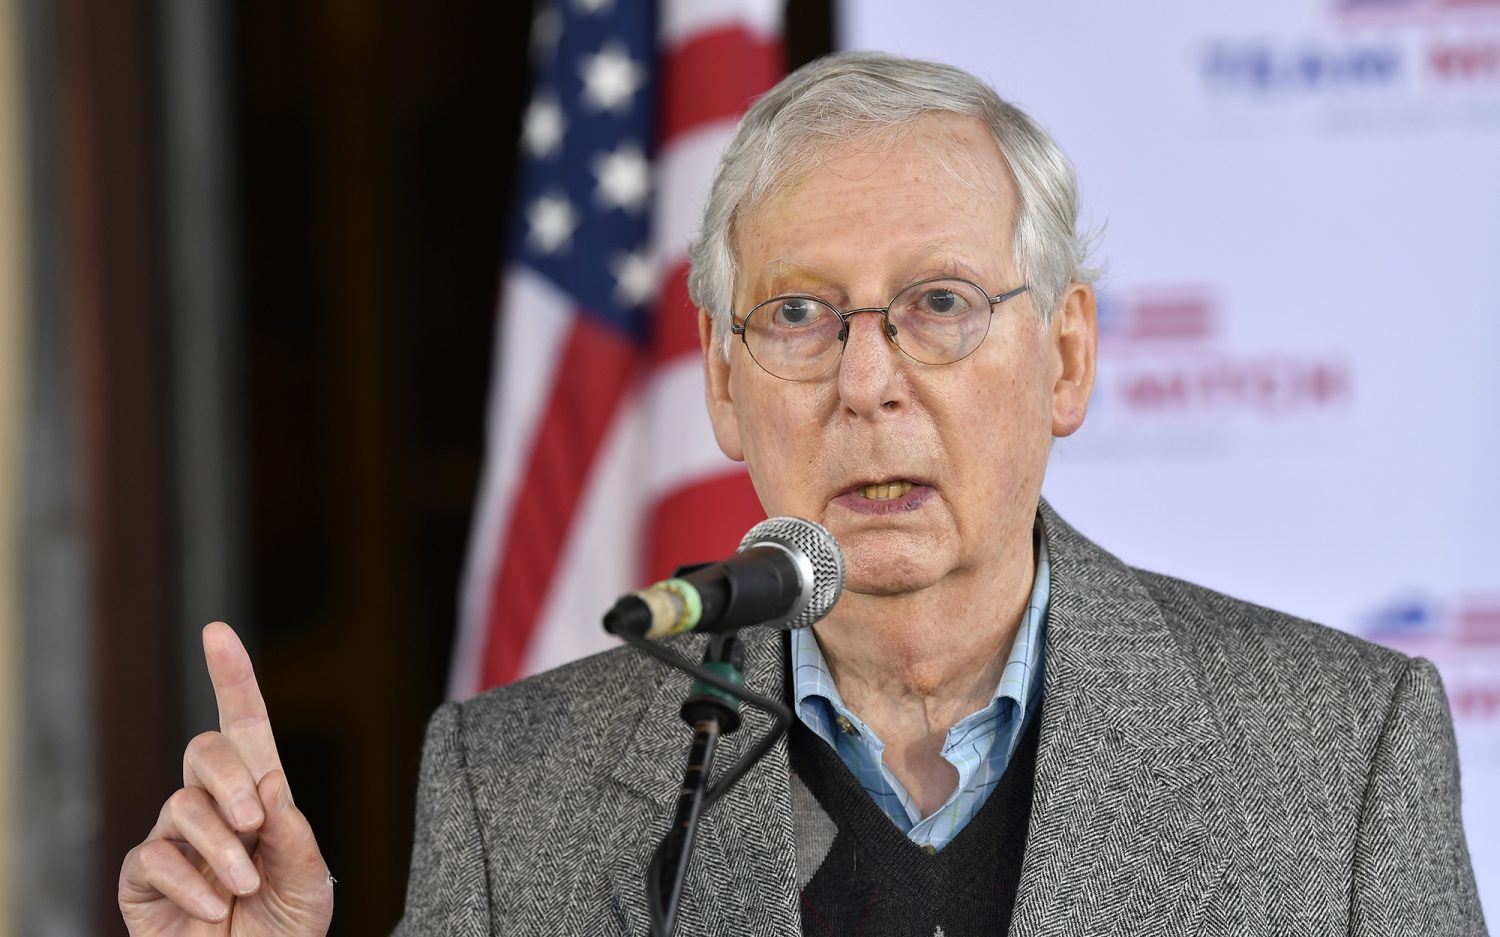 McConnell reelected; Senate control up for grabs